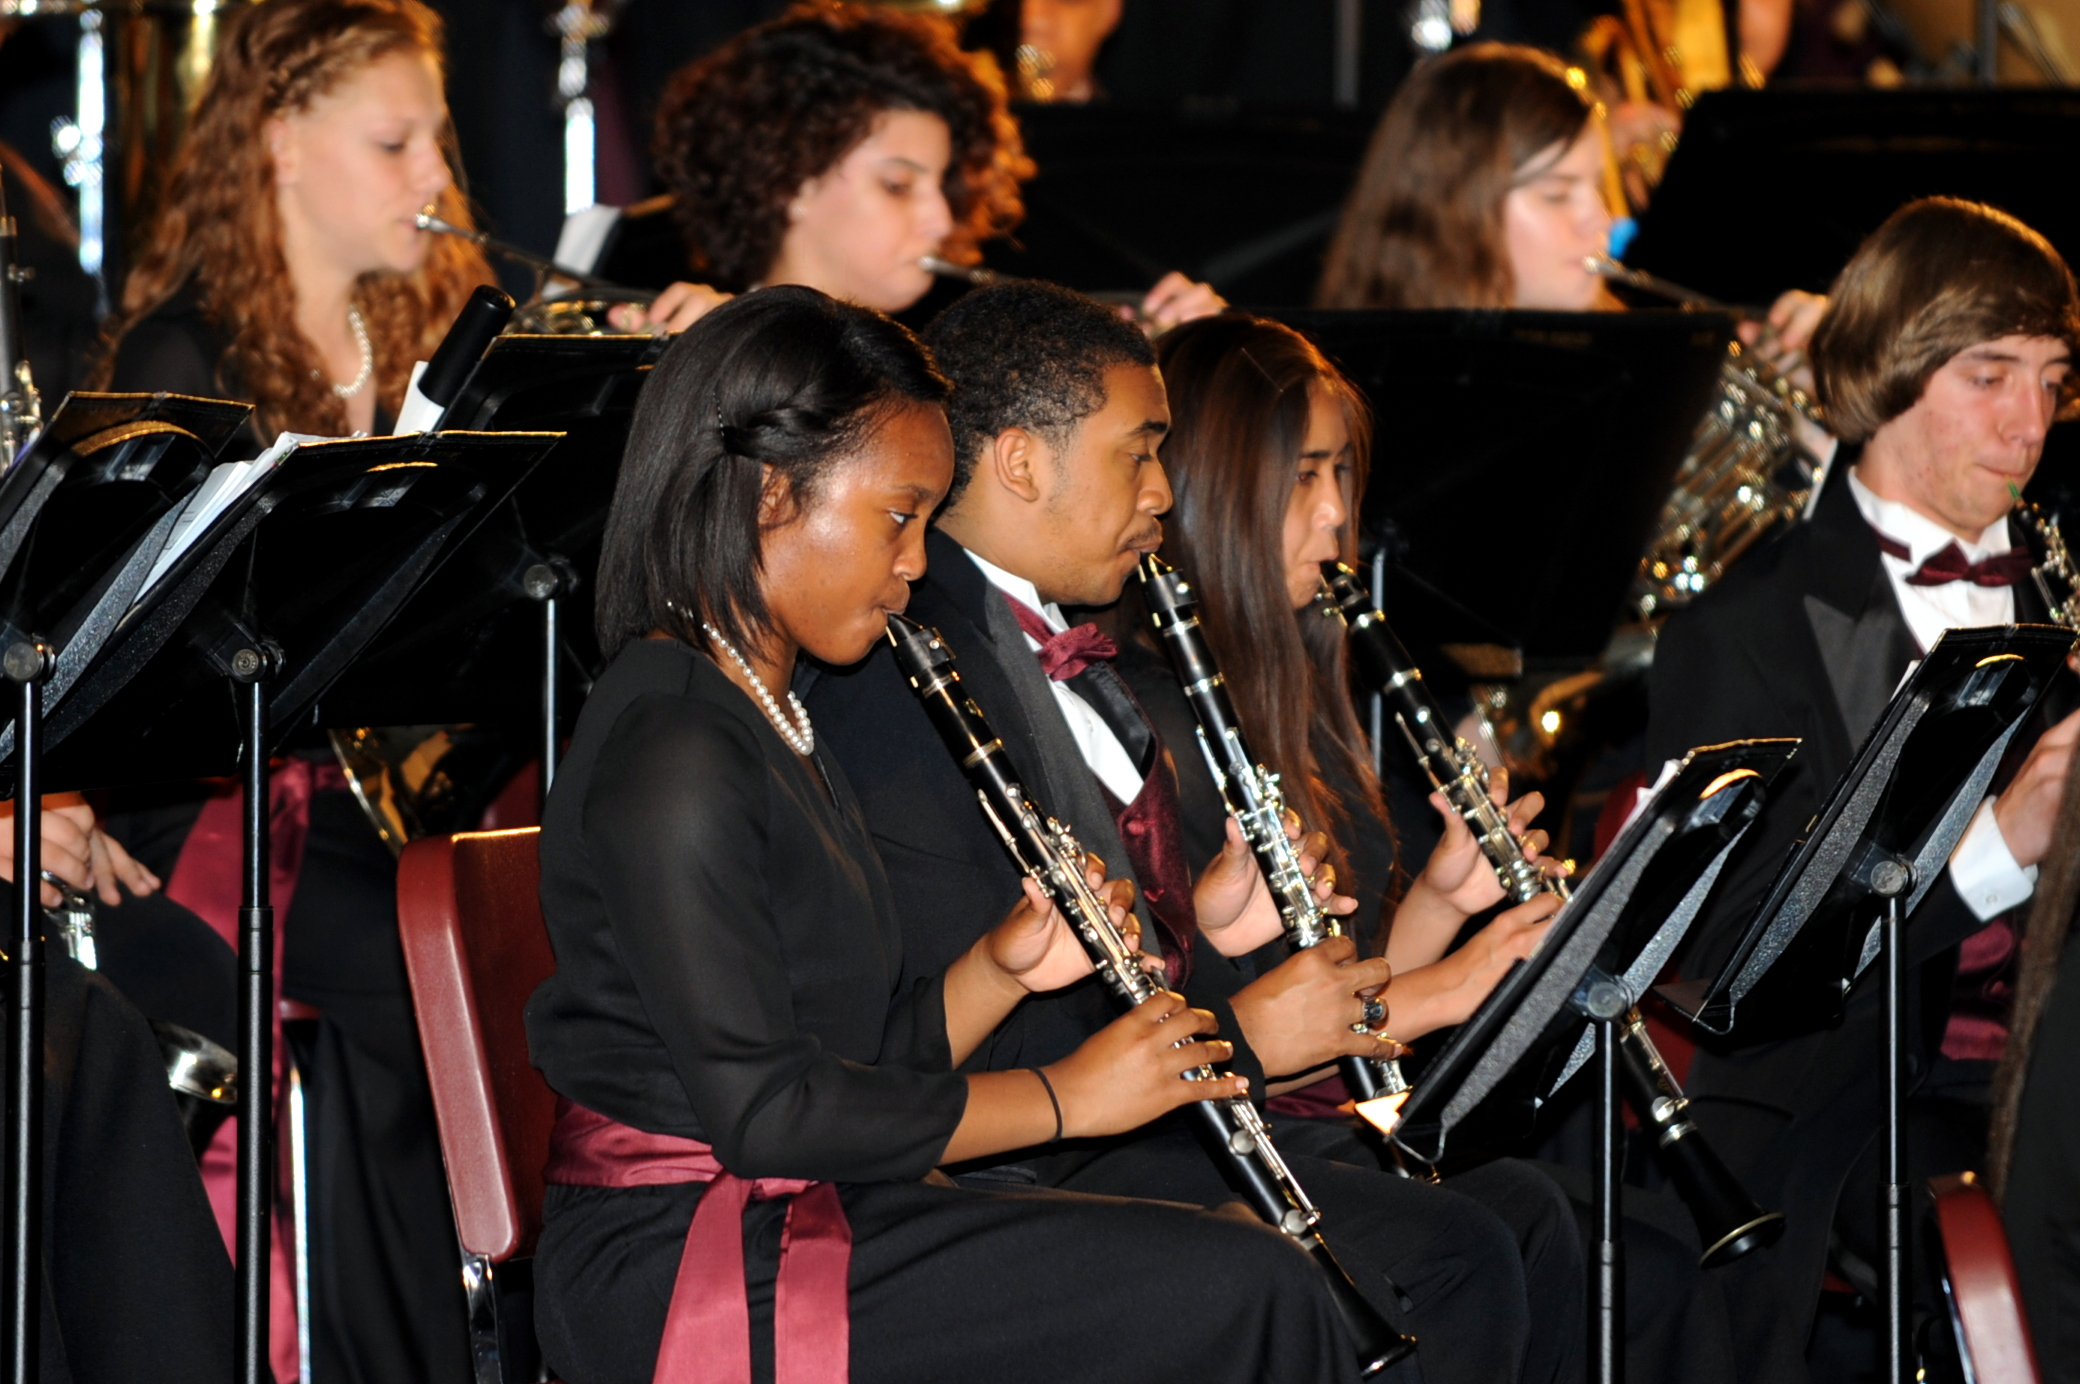 BMHS Band and Orchestra perform